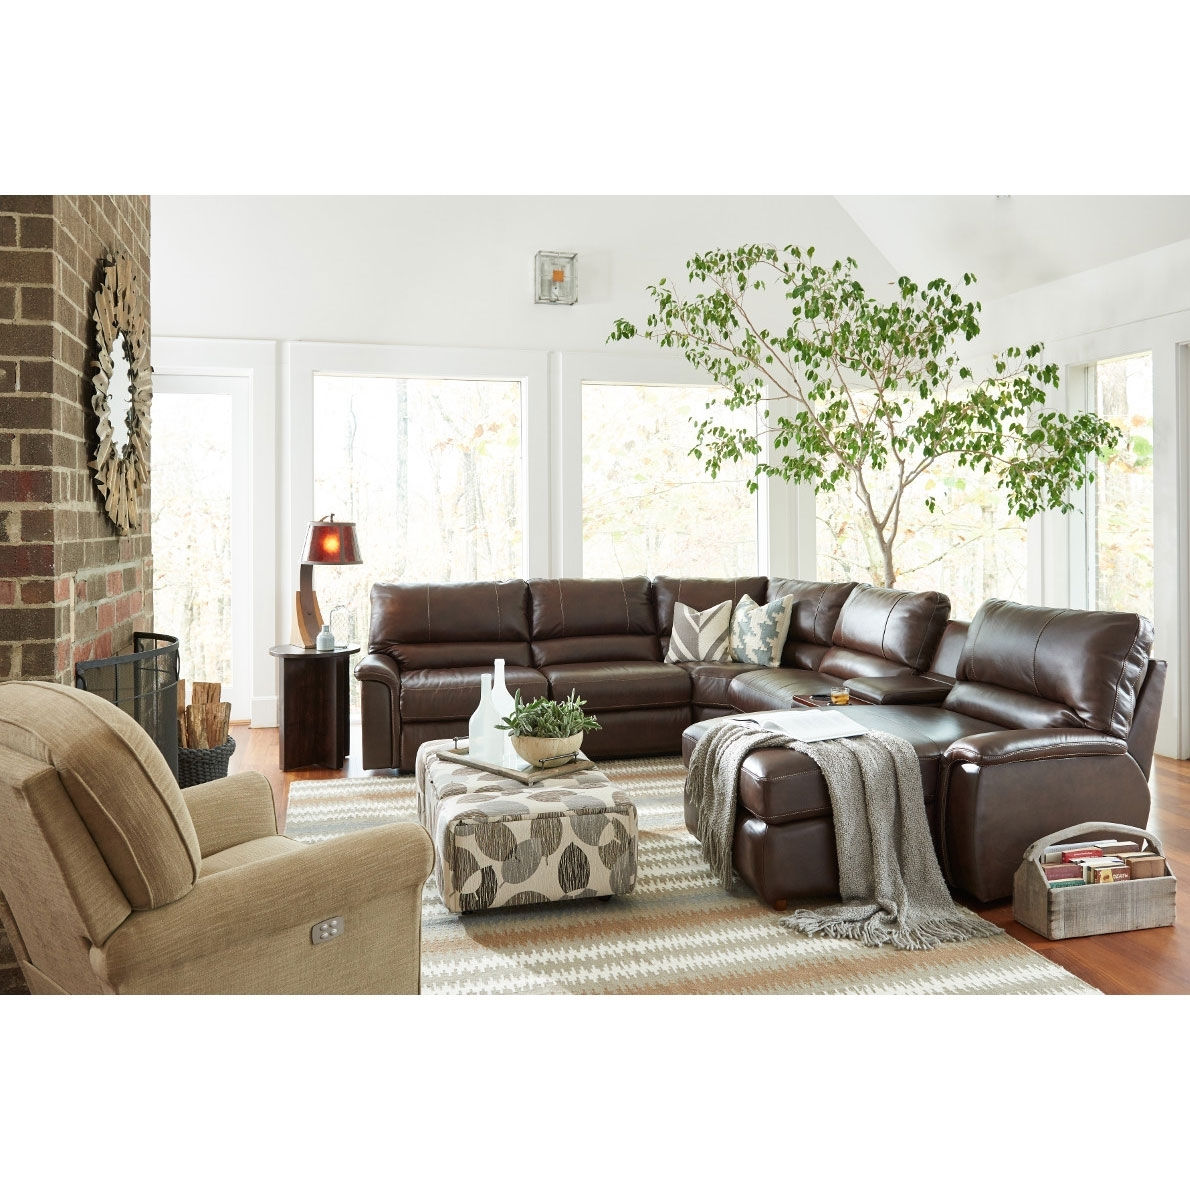 Aspen Sectional with regard to Aspen 2 Piece Sectionals With Laf Chaise (Image 9 of 30)